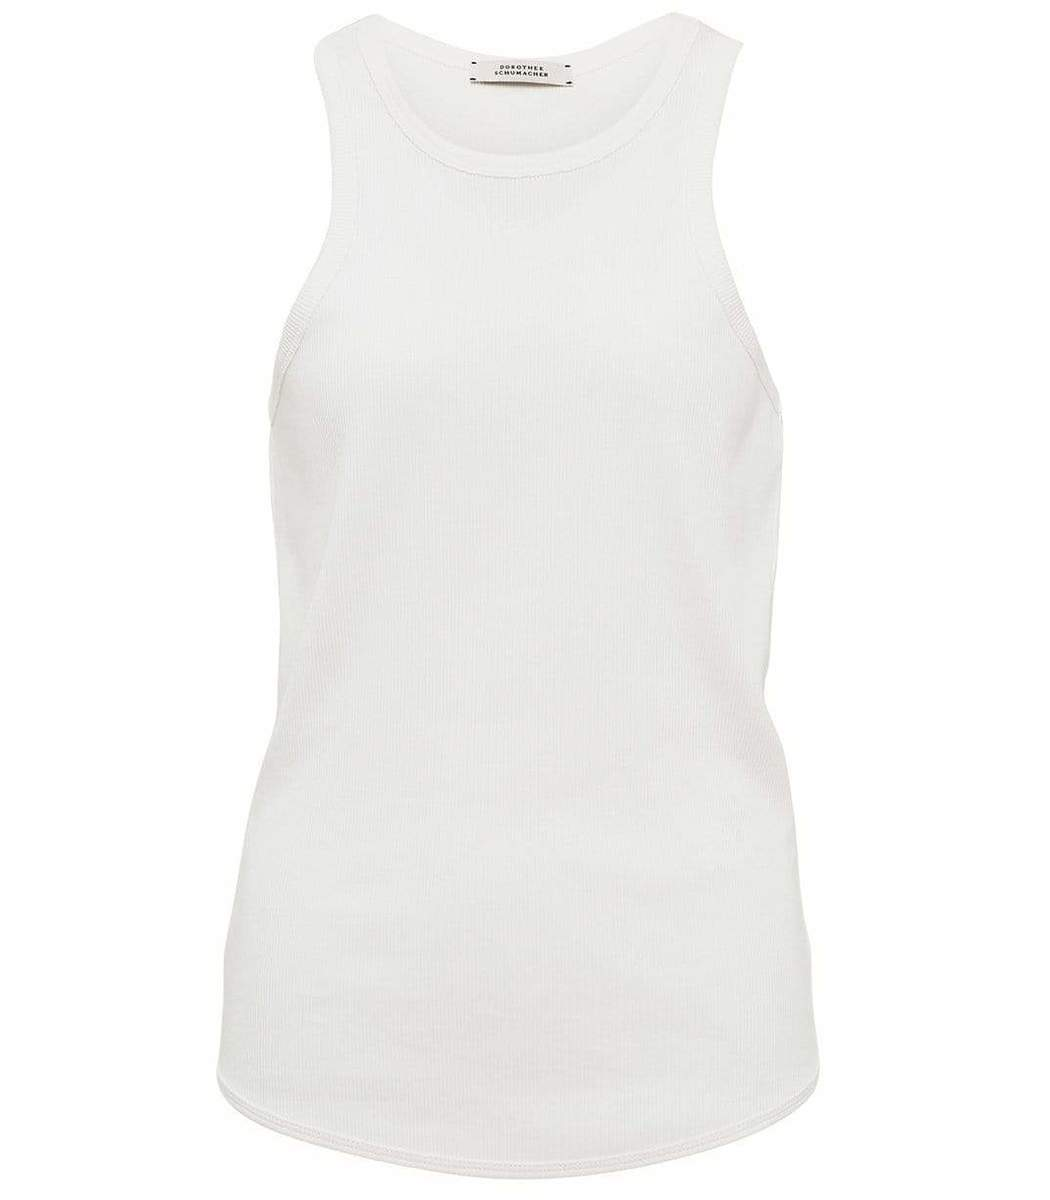 Dorothee Schumacher Tops White Ribbed Seduction Top